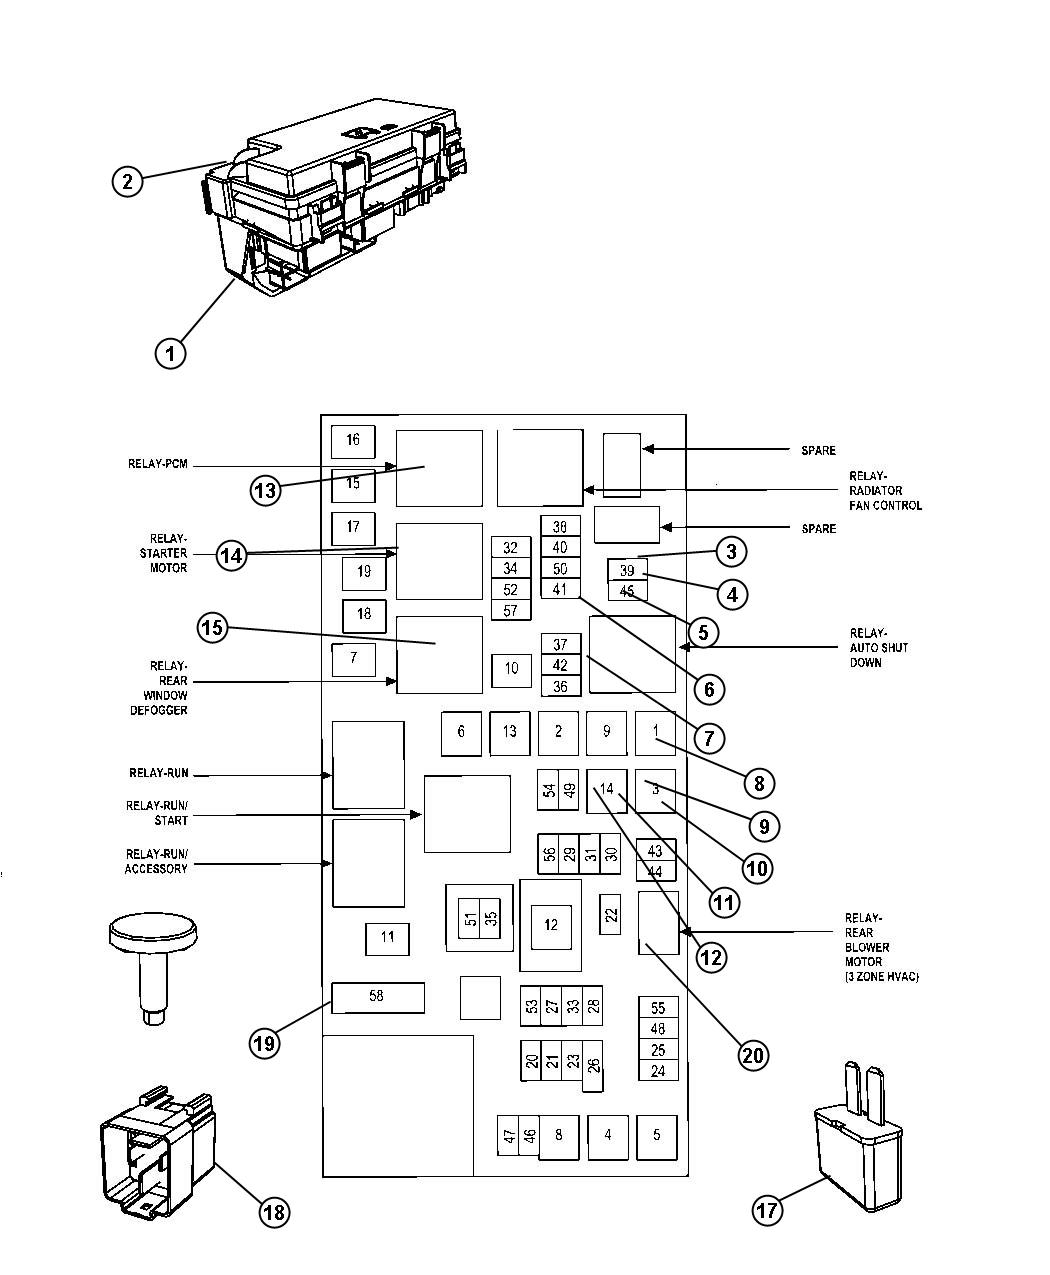 hight resolution of dodge journey horn location get free image about wiring chrysler neon 2002 fuse box diagram